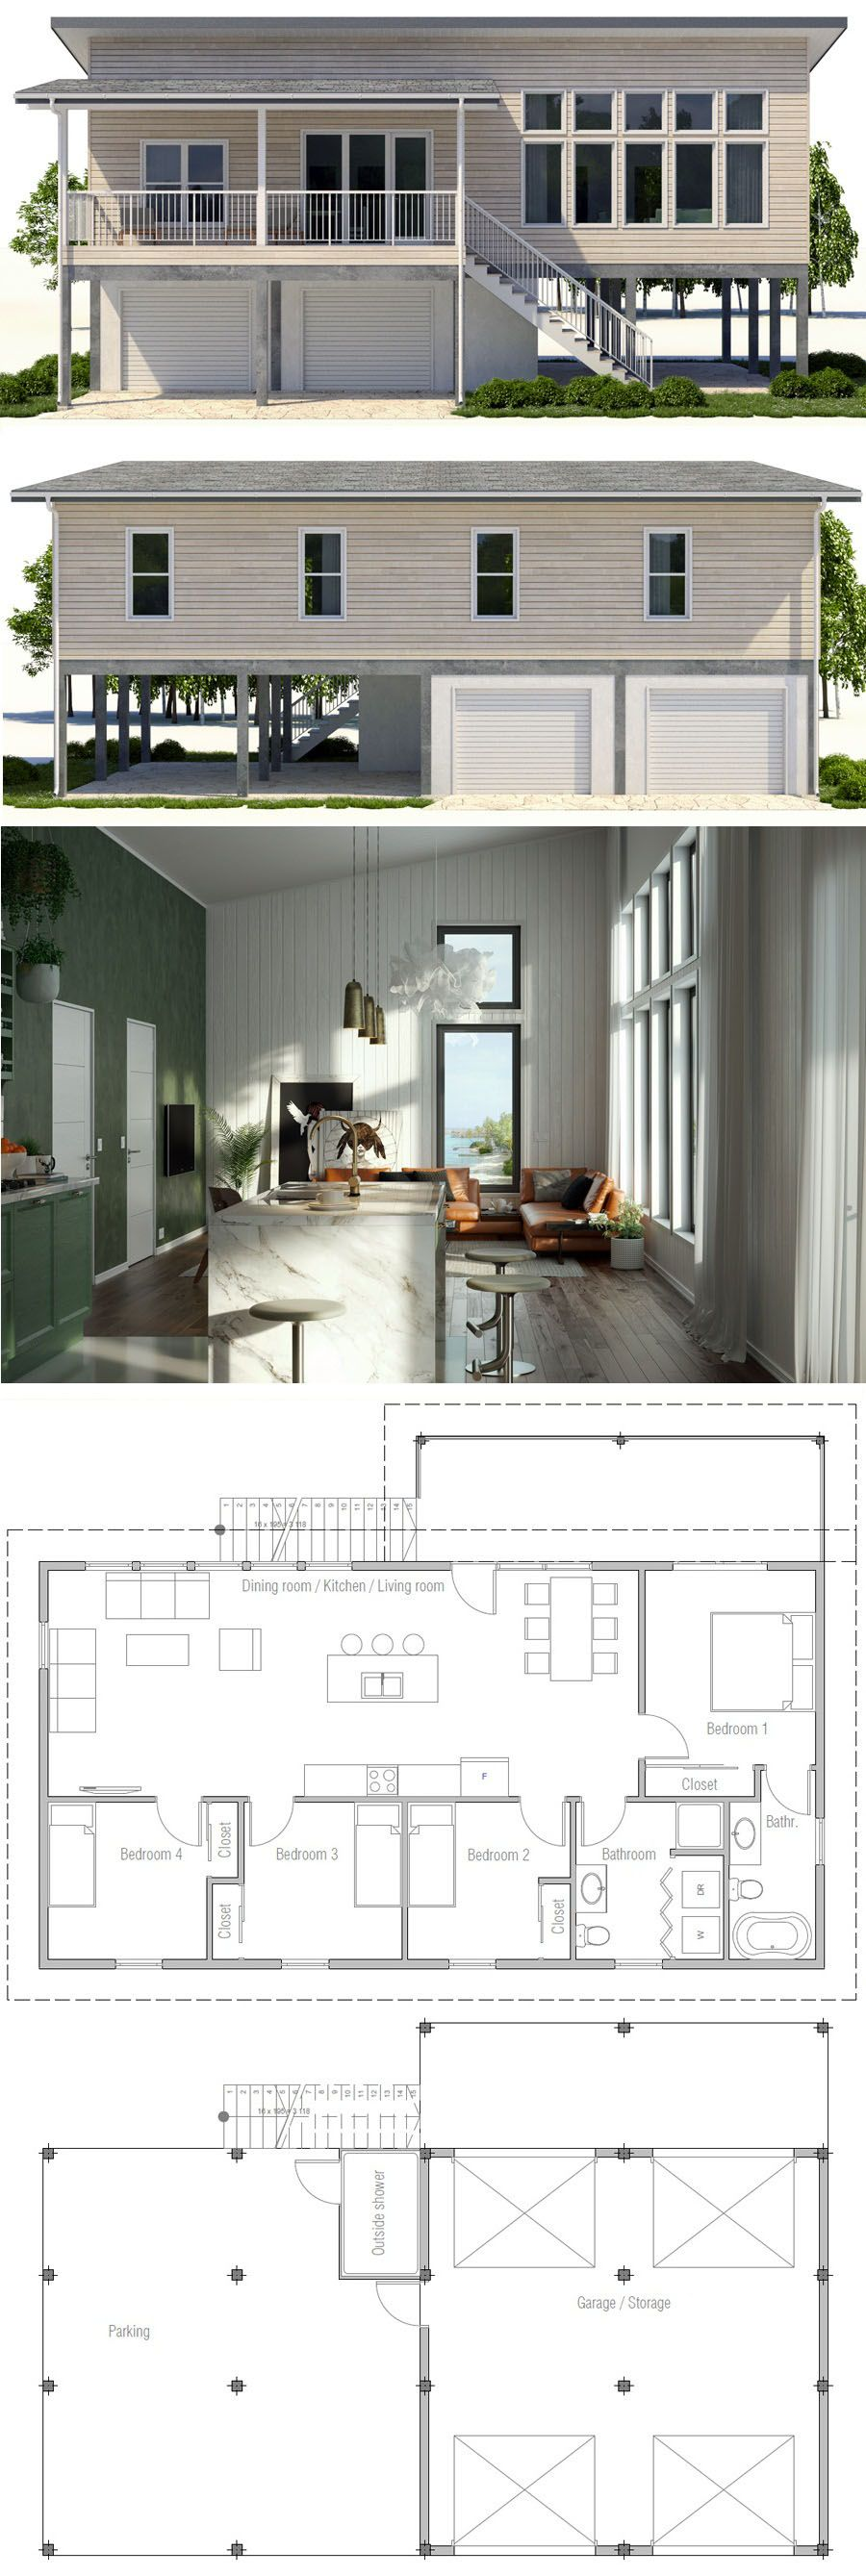 Beach House Plan With Three Bedrooms Home Plan Coastal House Plans Beach House Plan Beach House Design